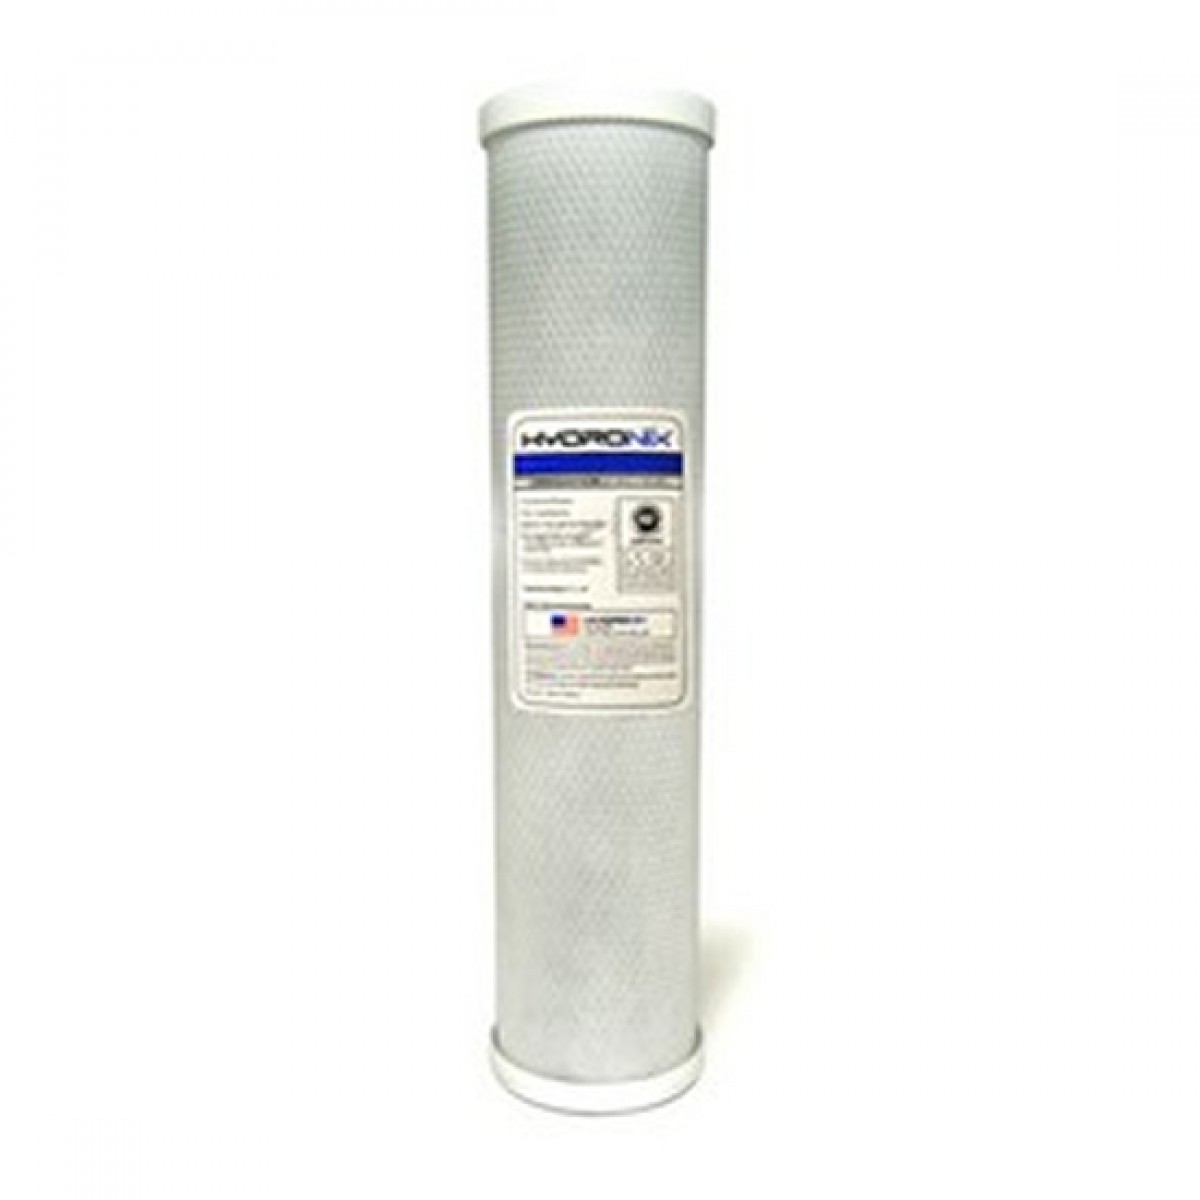 Hydronix x Carbon Filter - Micron Only 4- Filters Fast